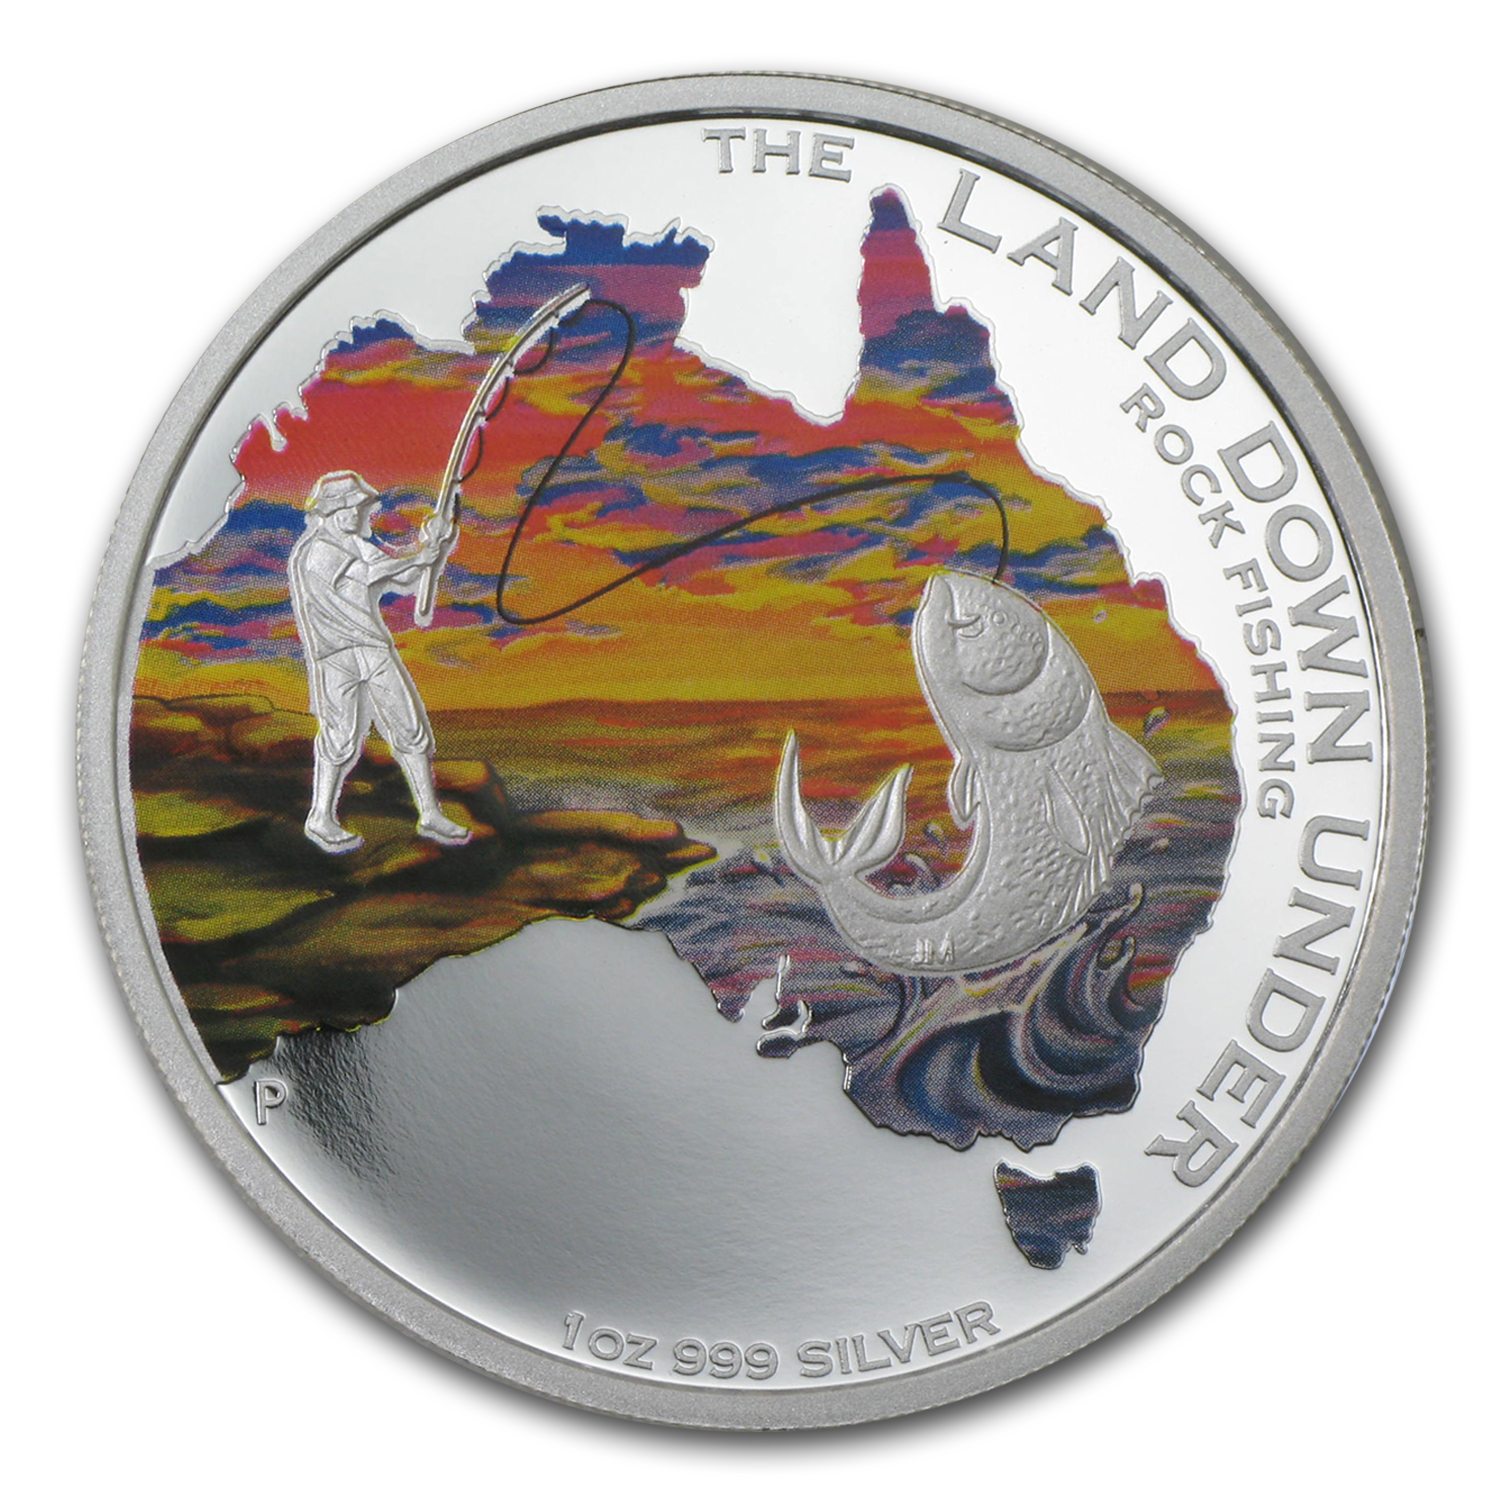 2014 Australia 1 oz Silver The Land Down Under Rock Fishing Prf